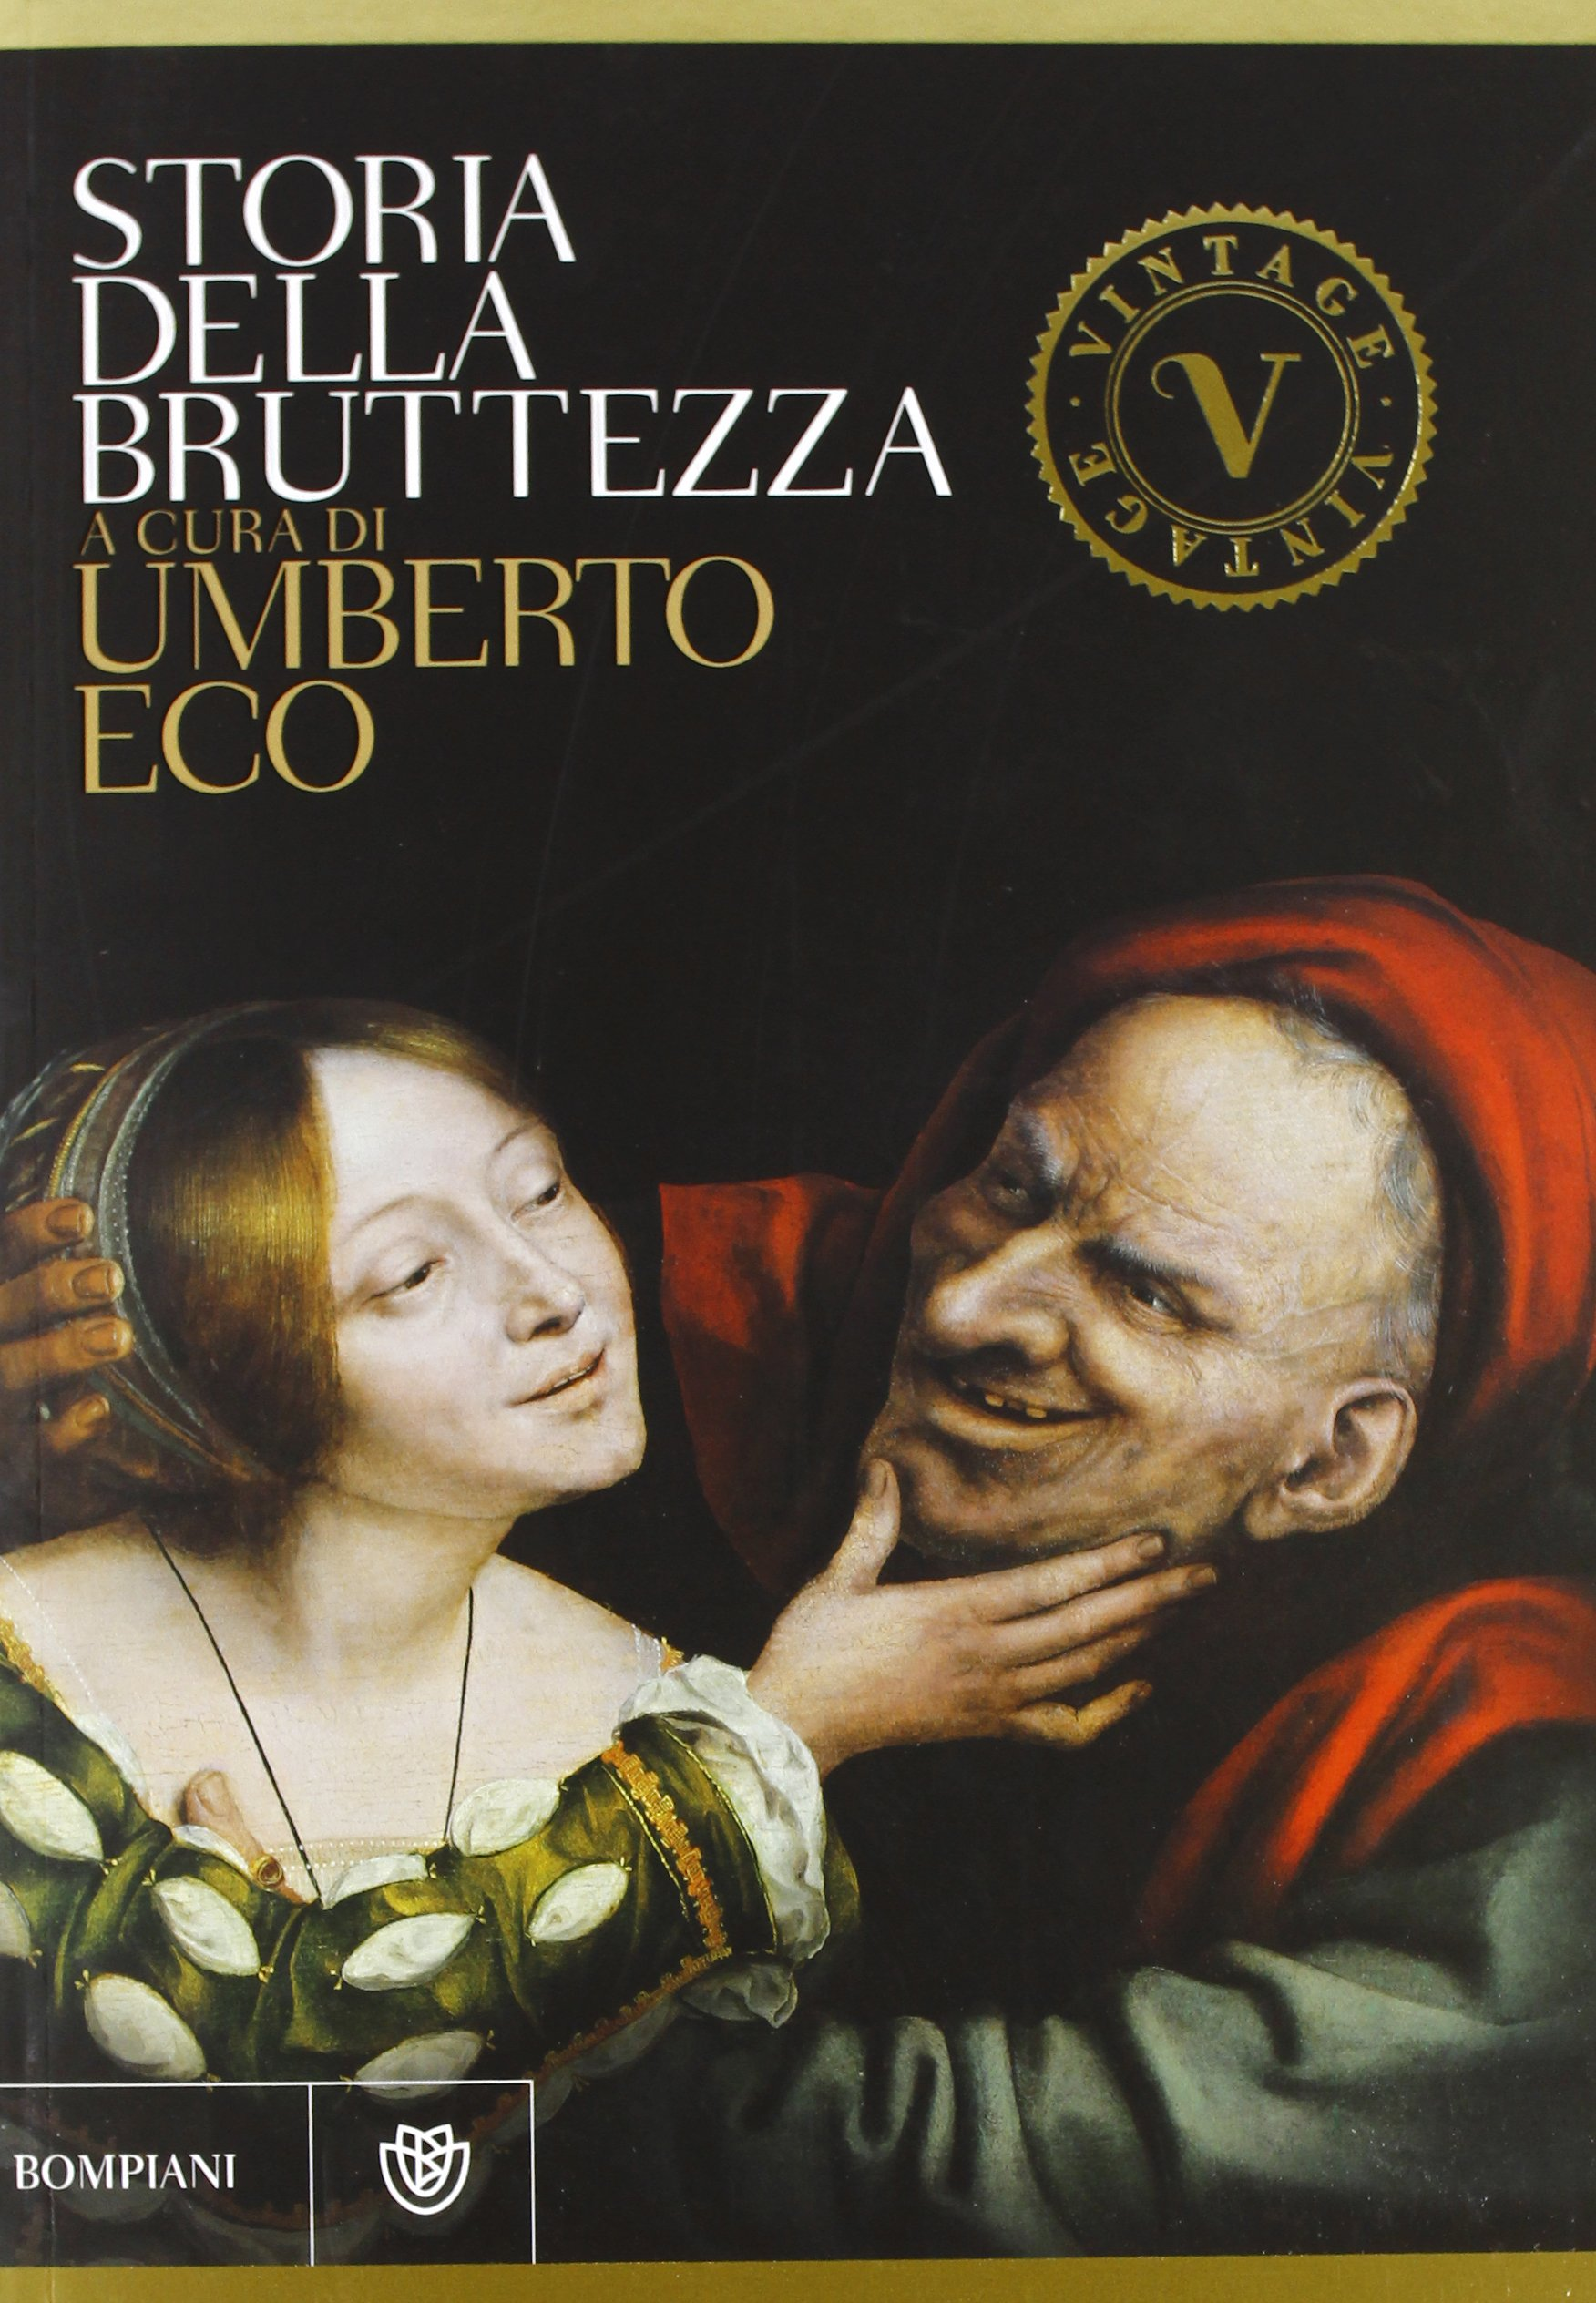 Libros Torrent Epub Download Umberto Eco Storia Della Bruttezza 2007